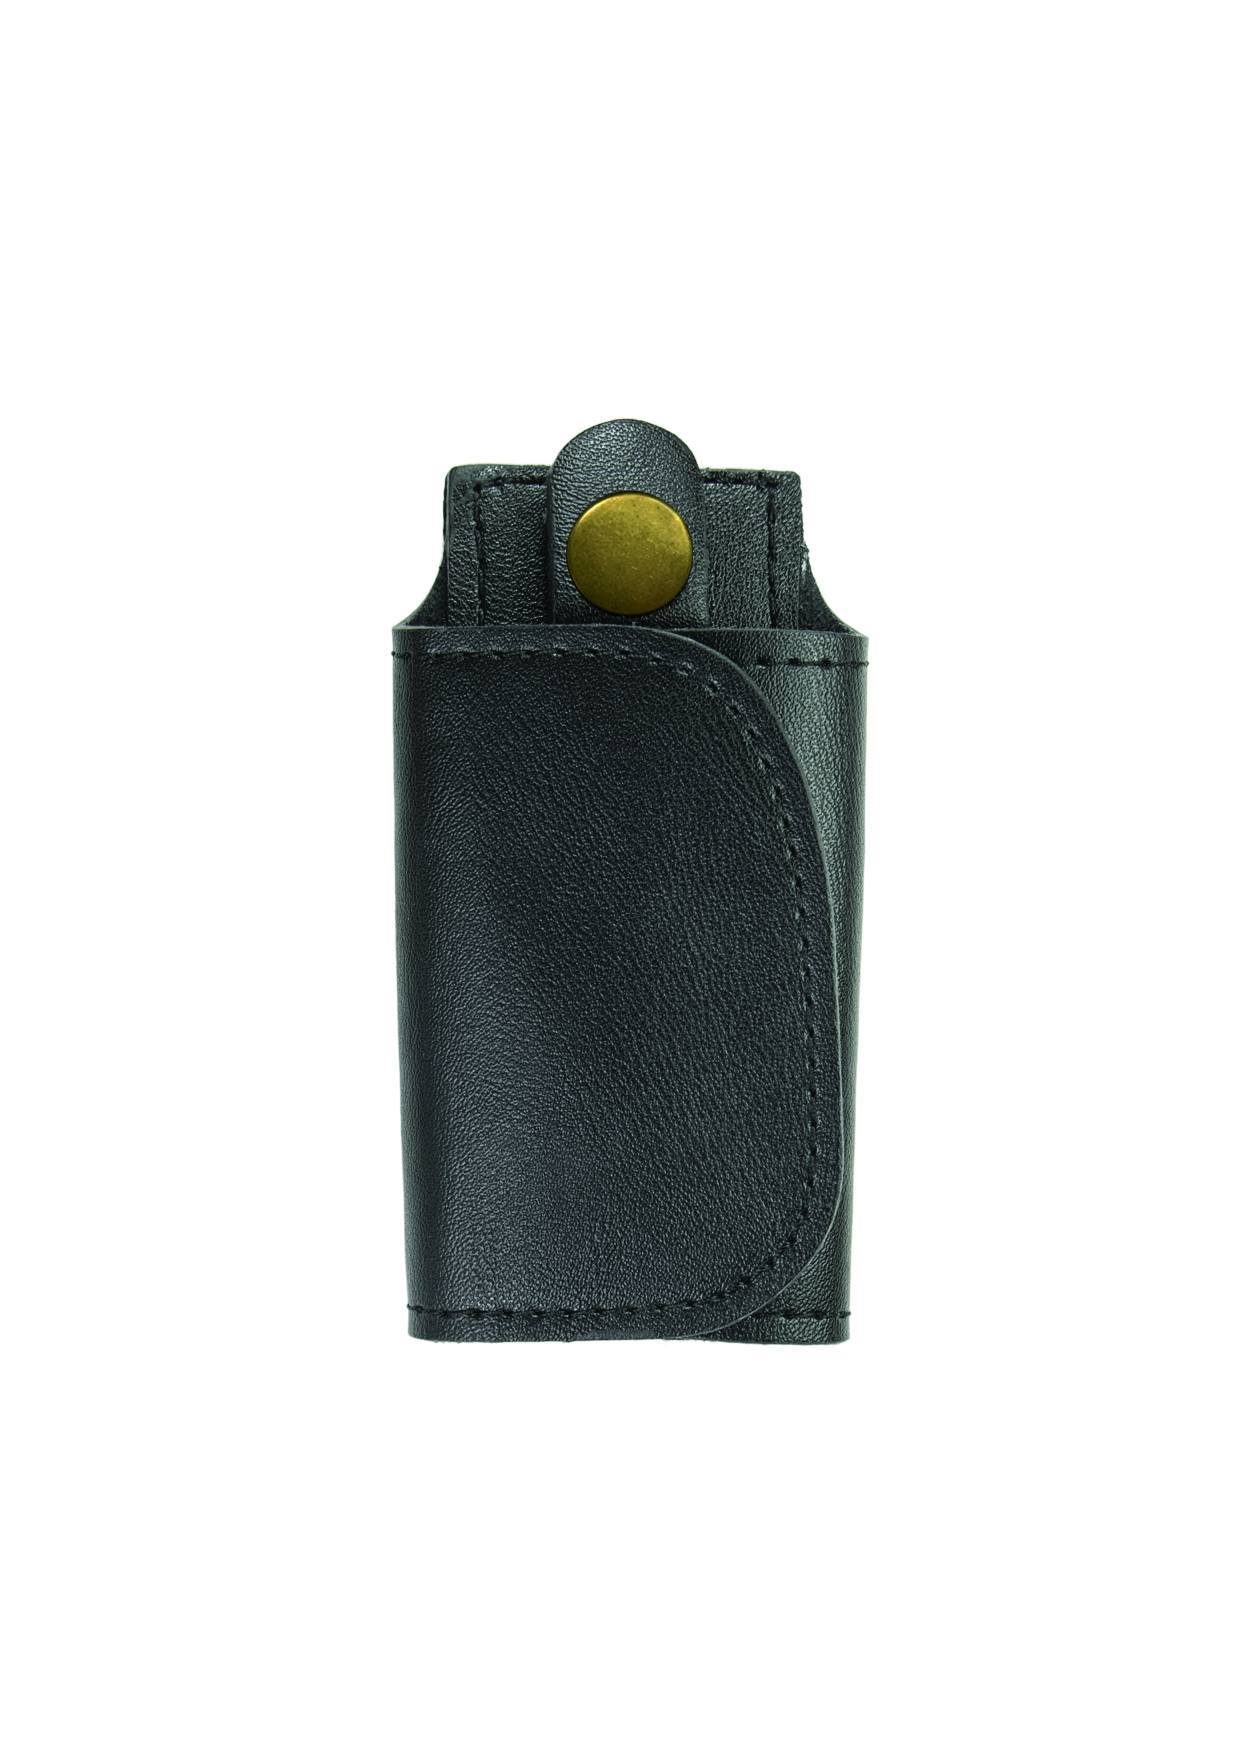 Key Holder, Silent, AirTek, Smooth, Brass Snap-